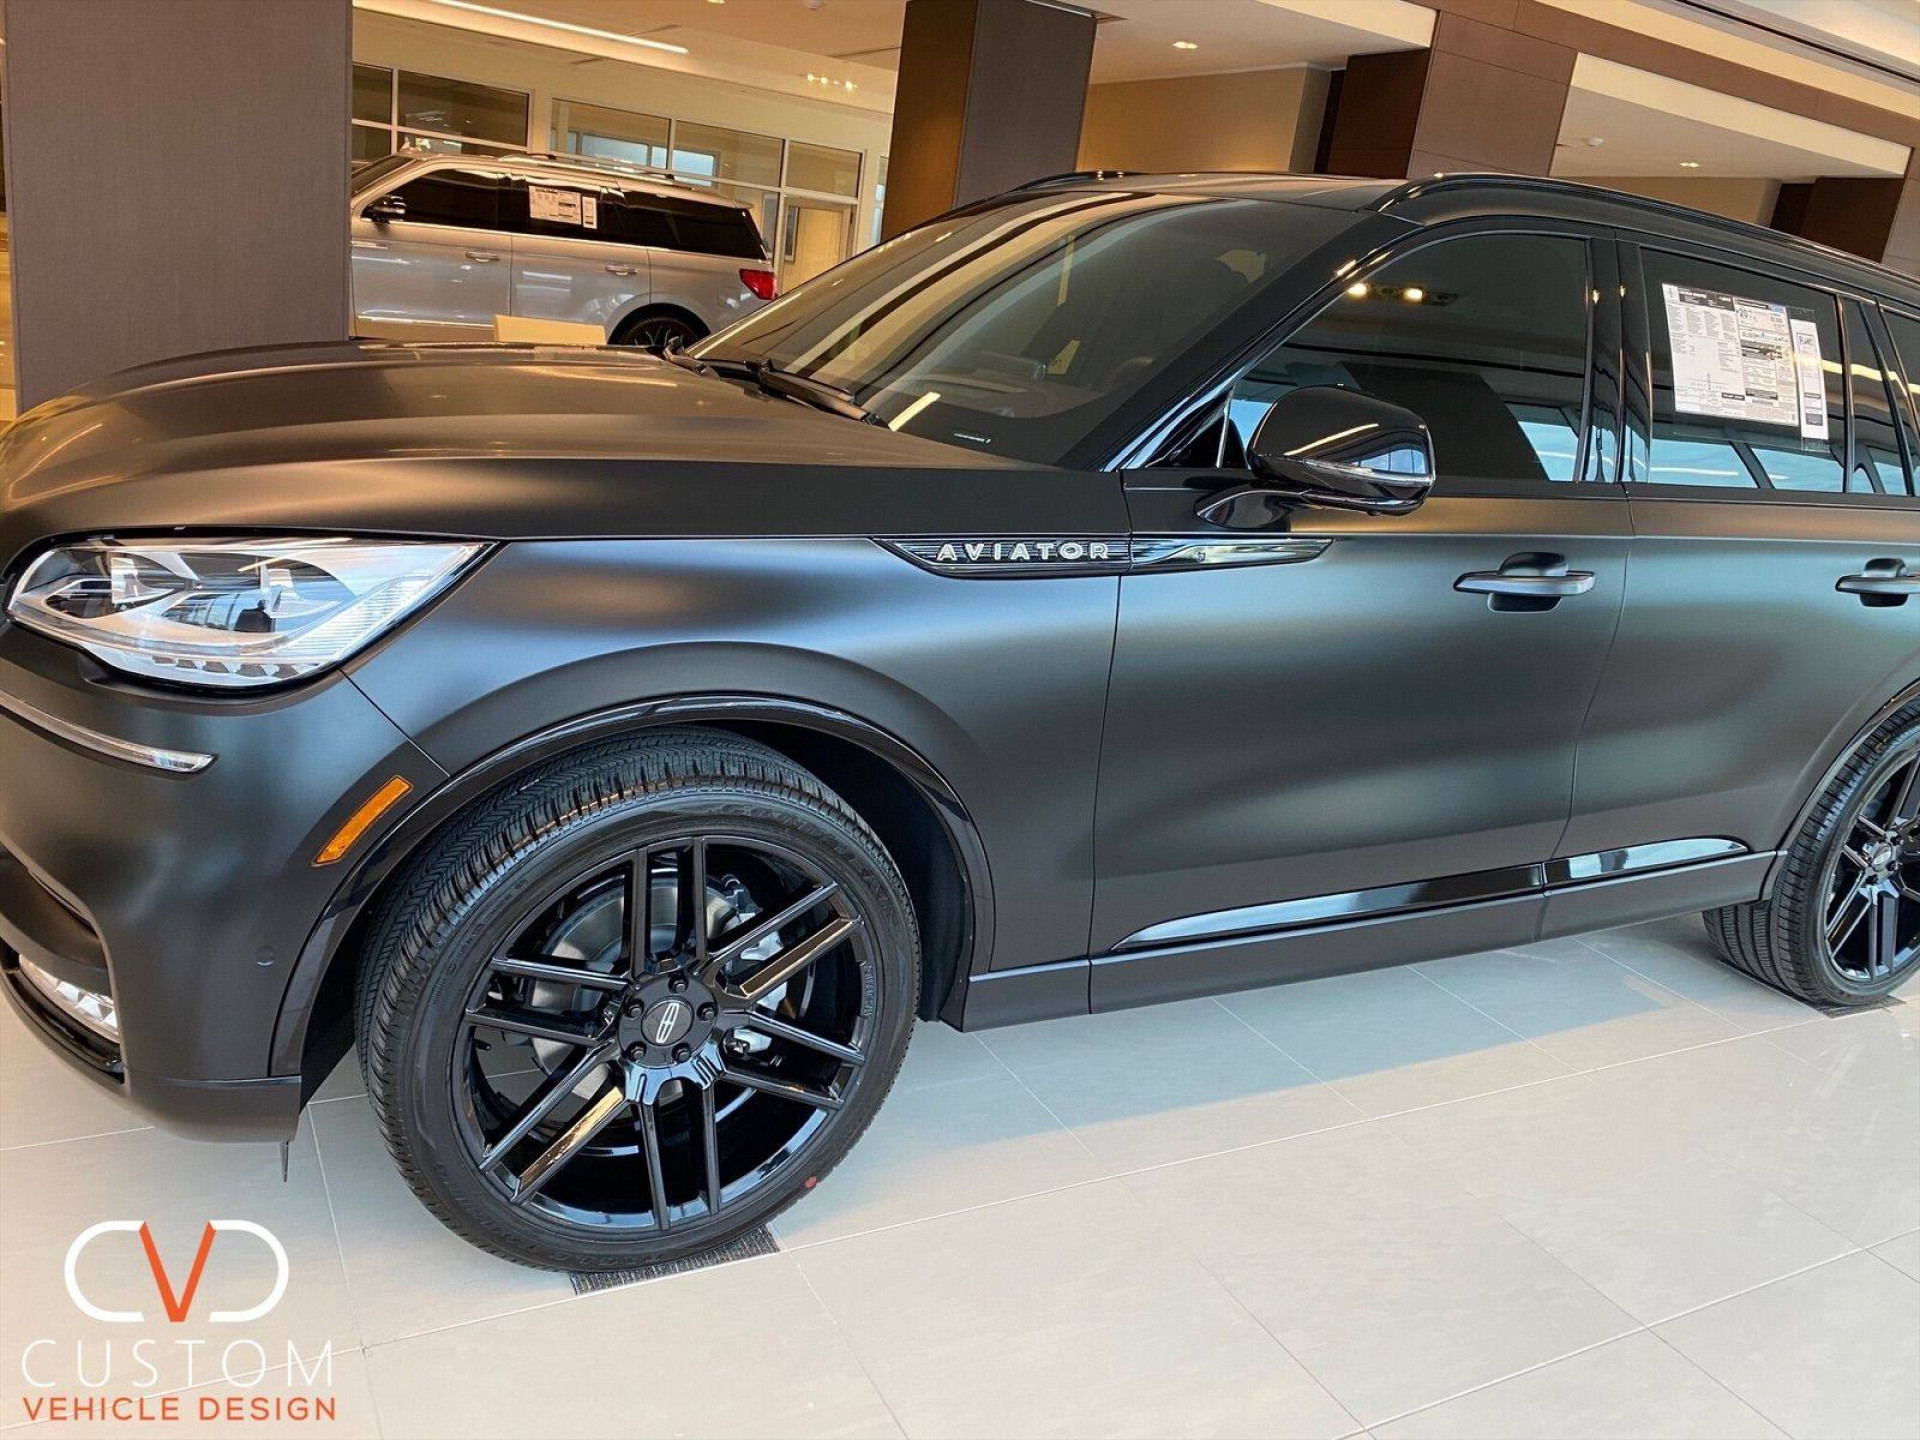 2021 Lincoln Aviator (Matte Black) customized by CVD